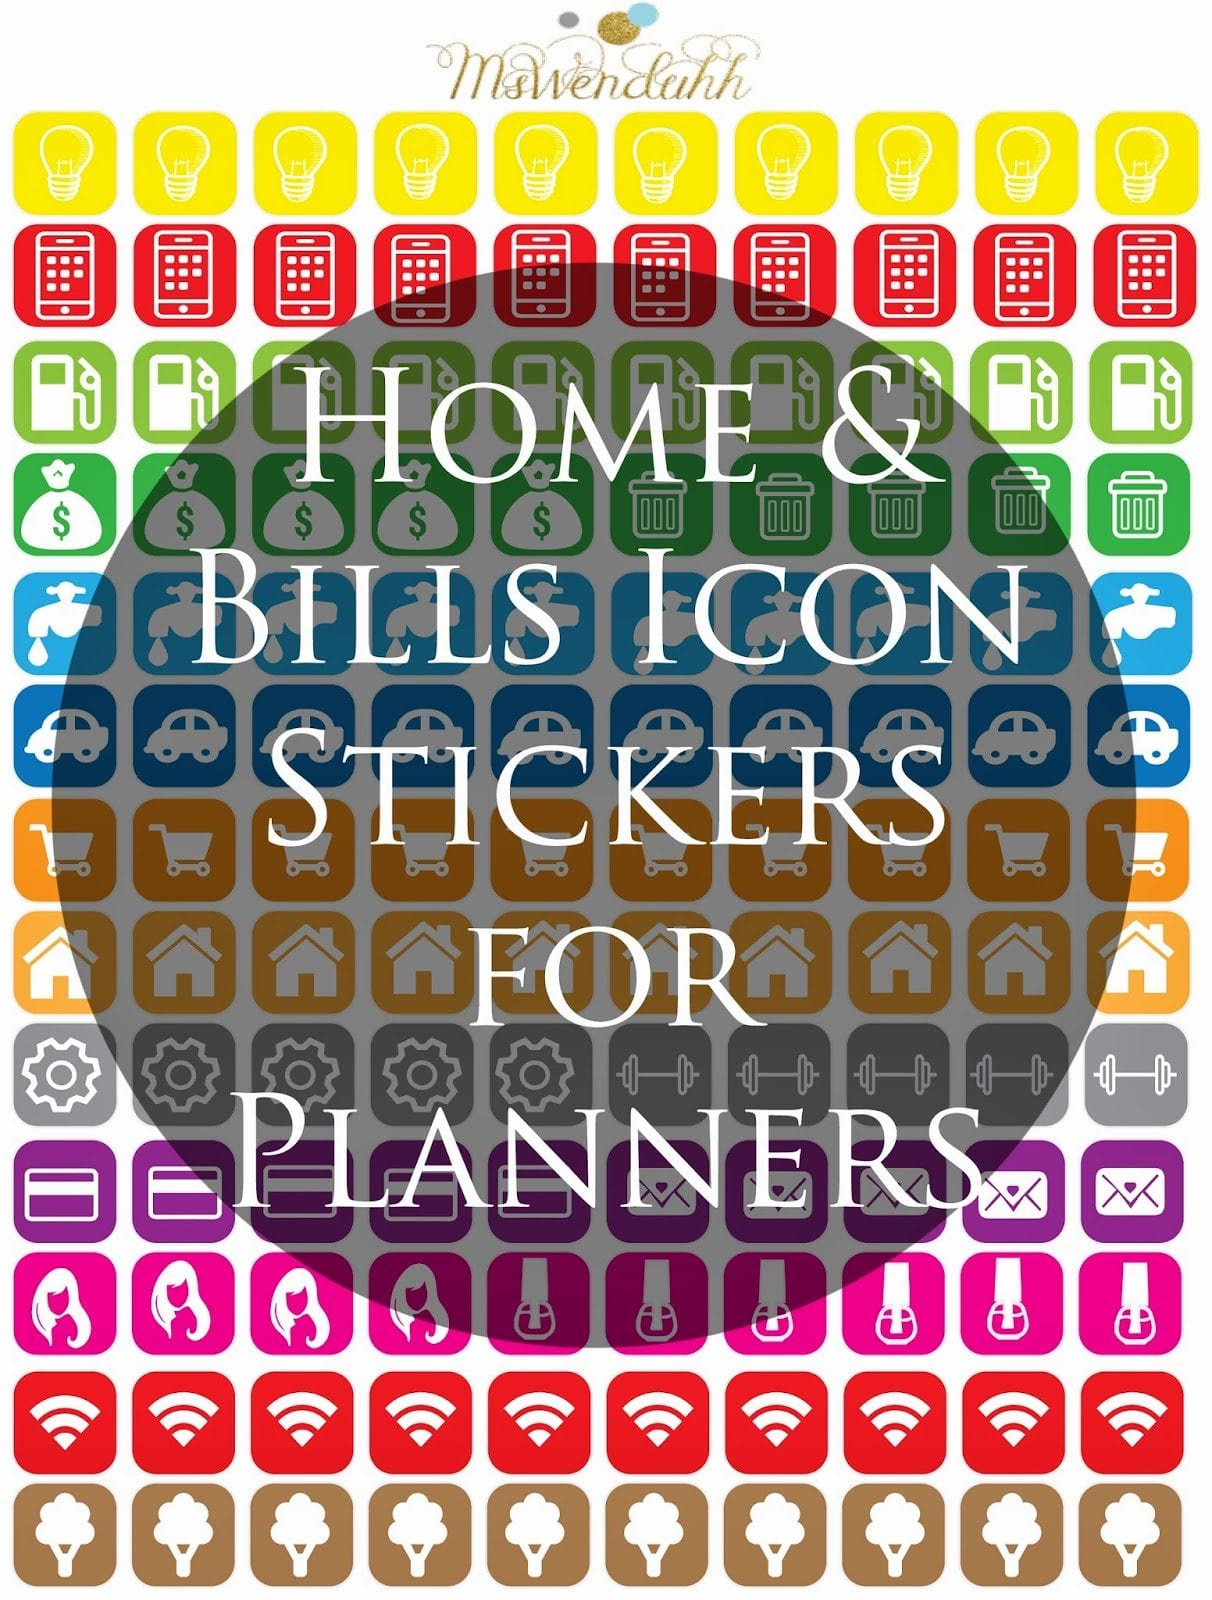 Home & Bill Icons Stickers